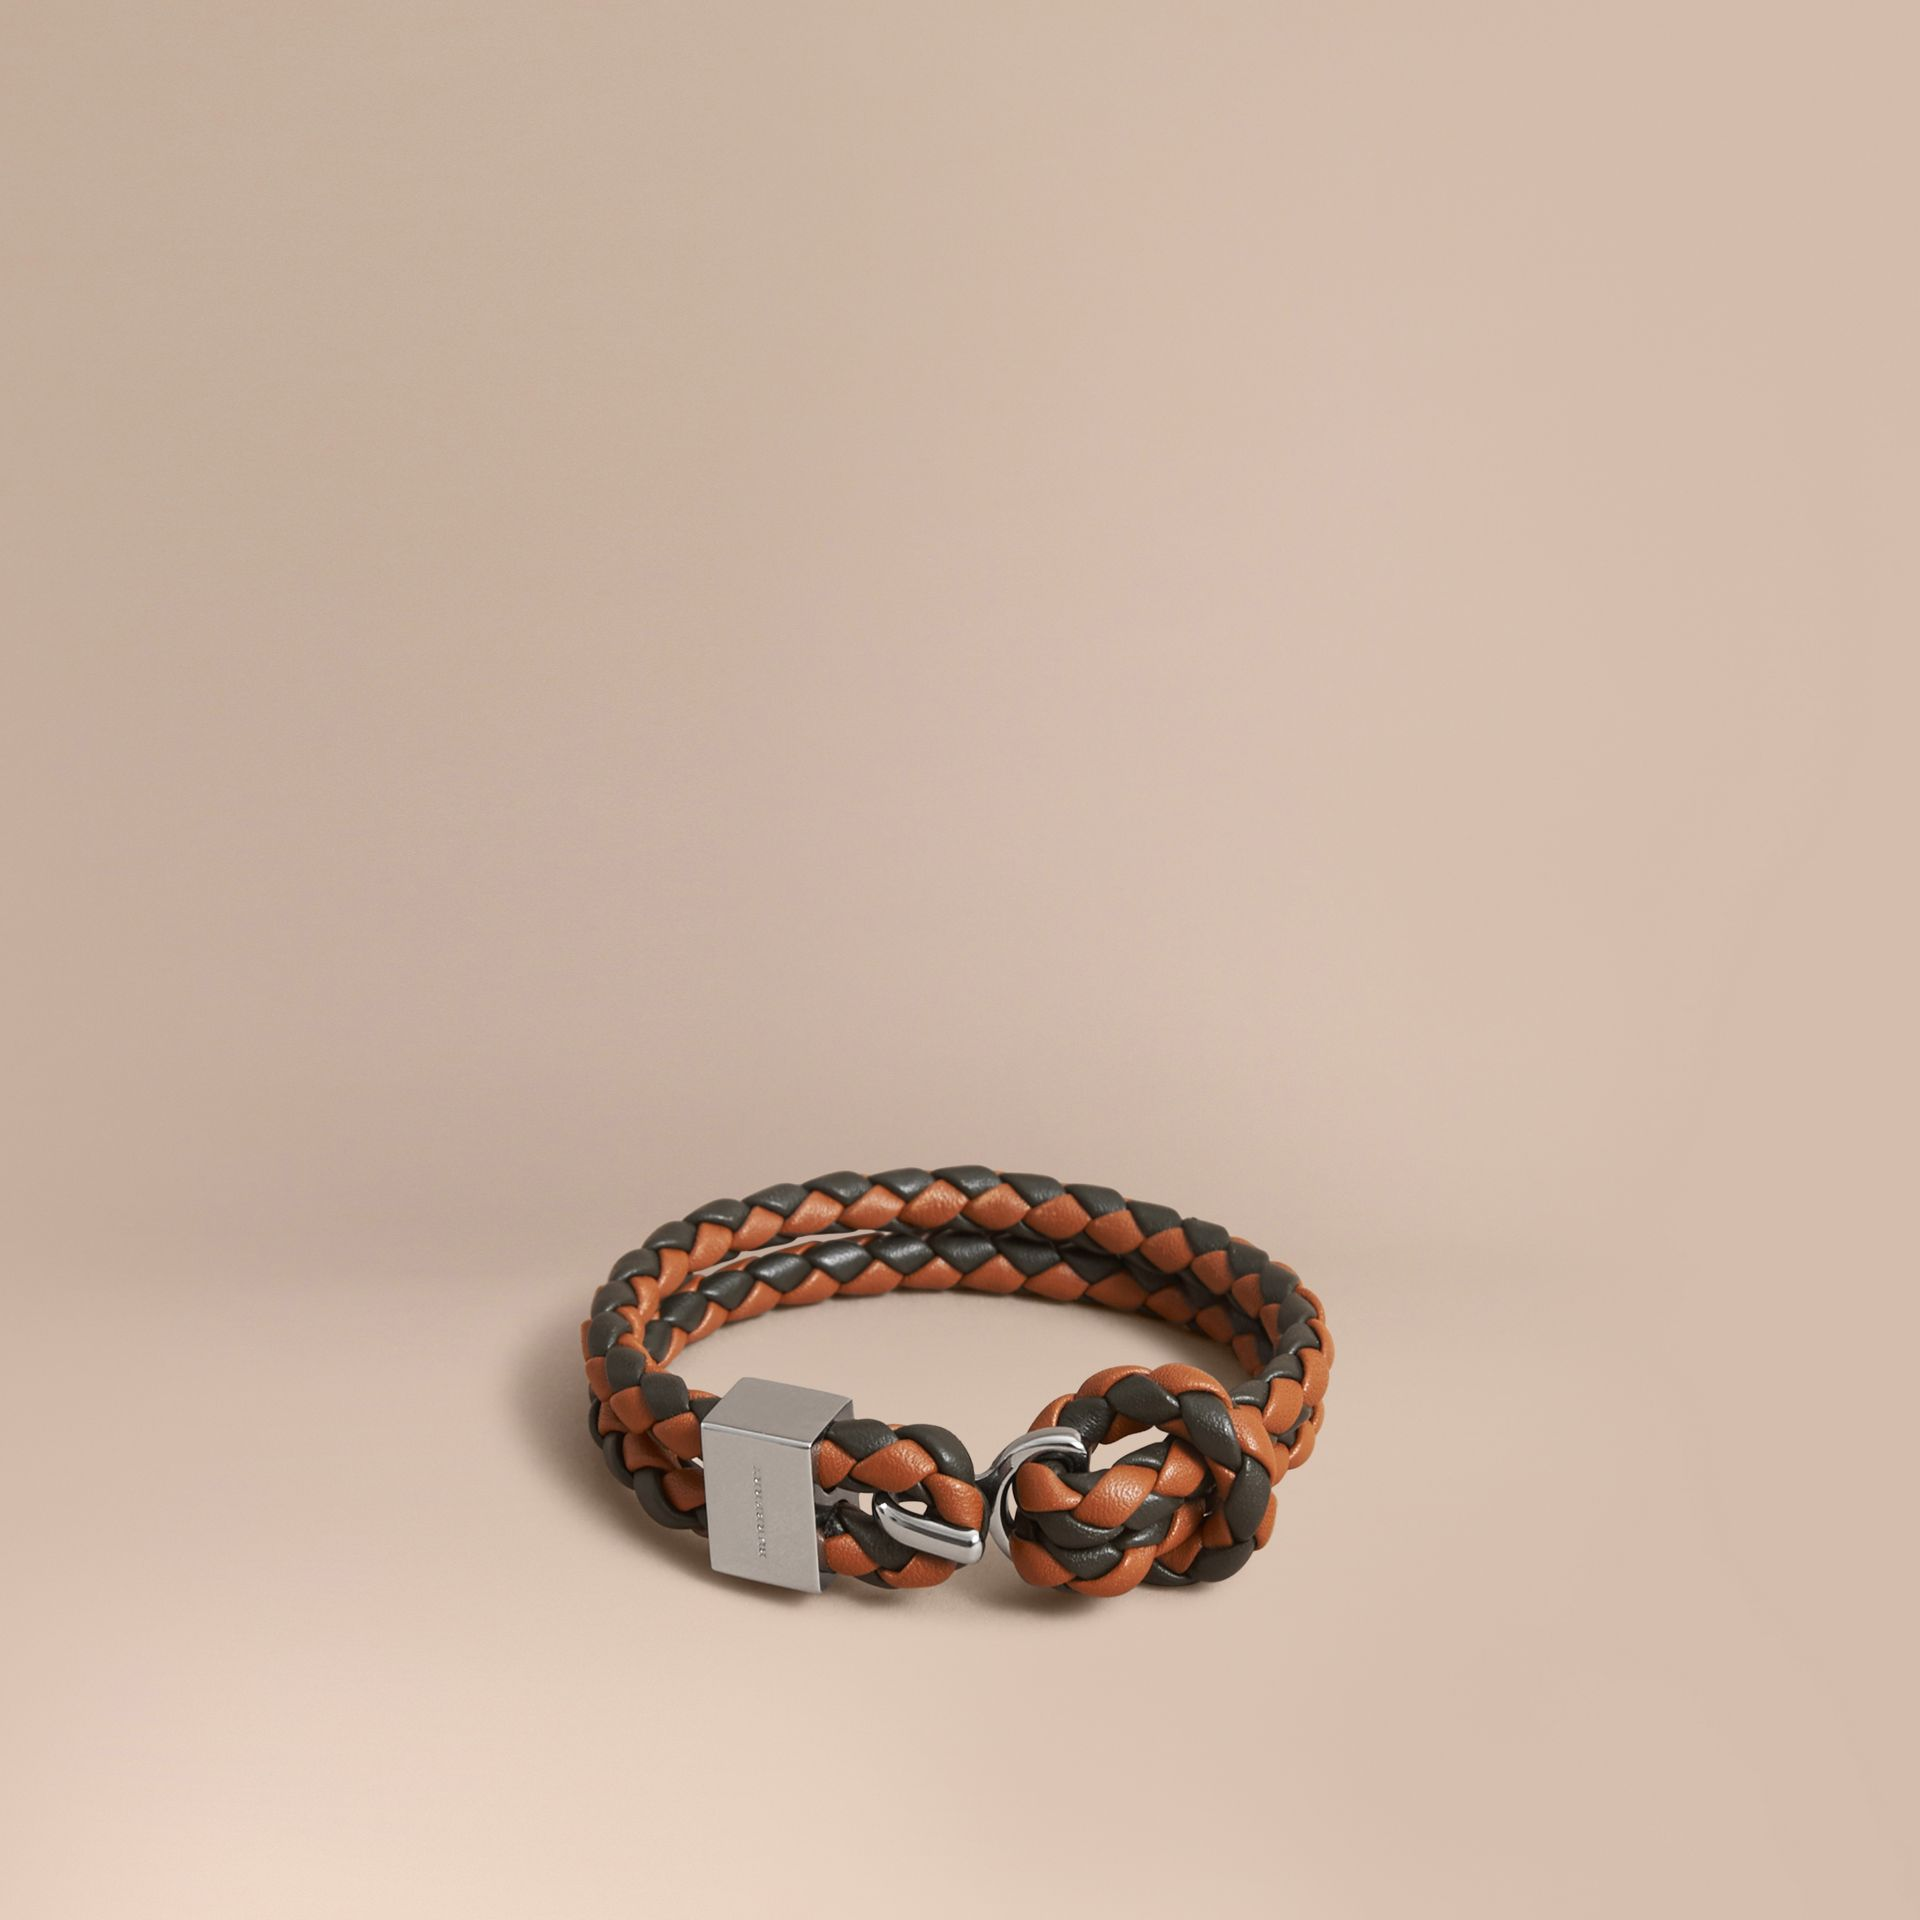 Two-tone Braided Leather Bracelet in Tan/black - Men | Burberry Australia - gallery image 1